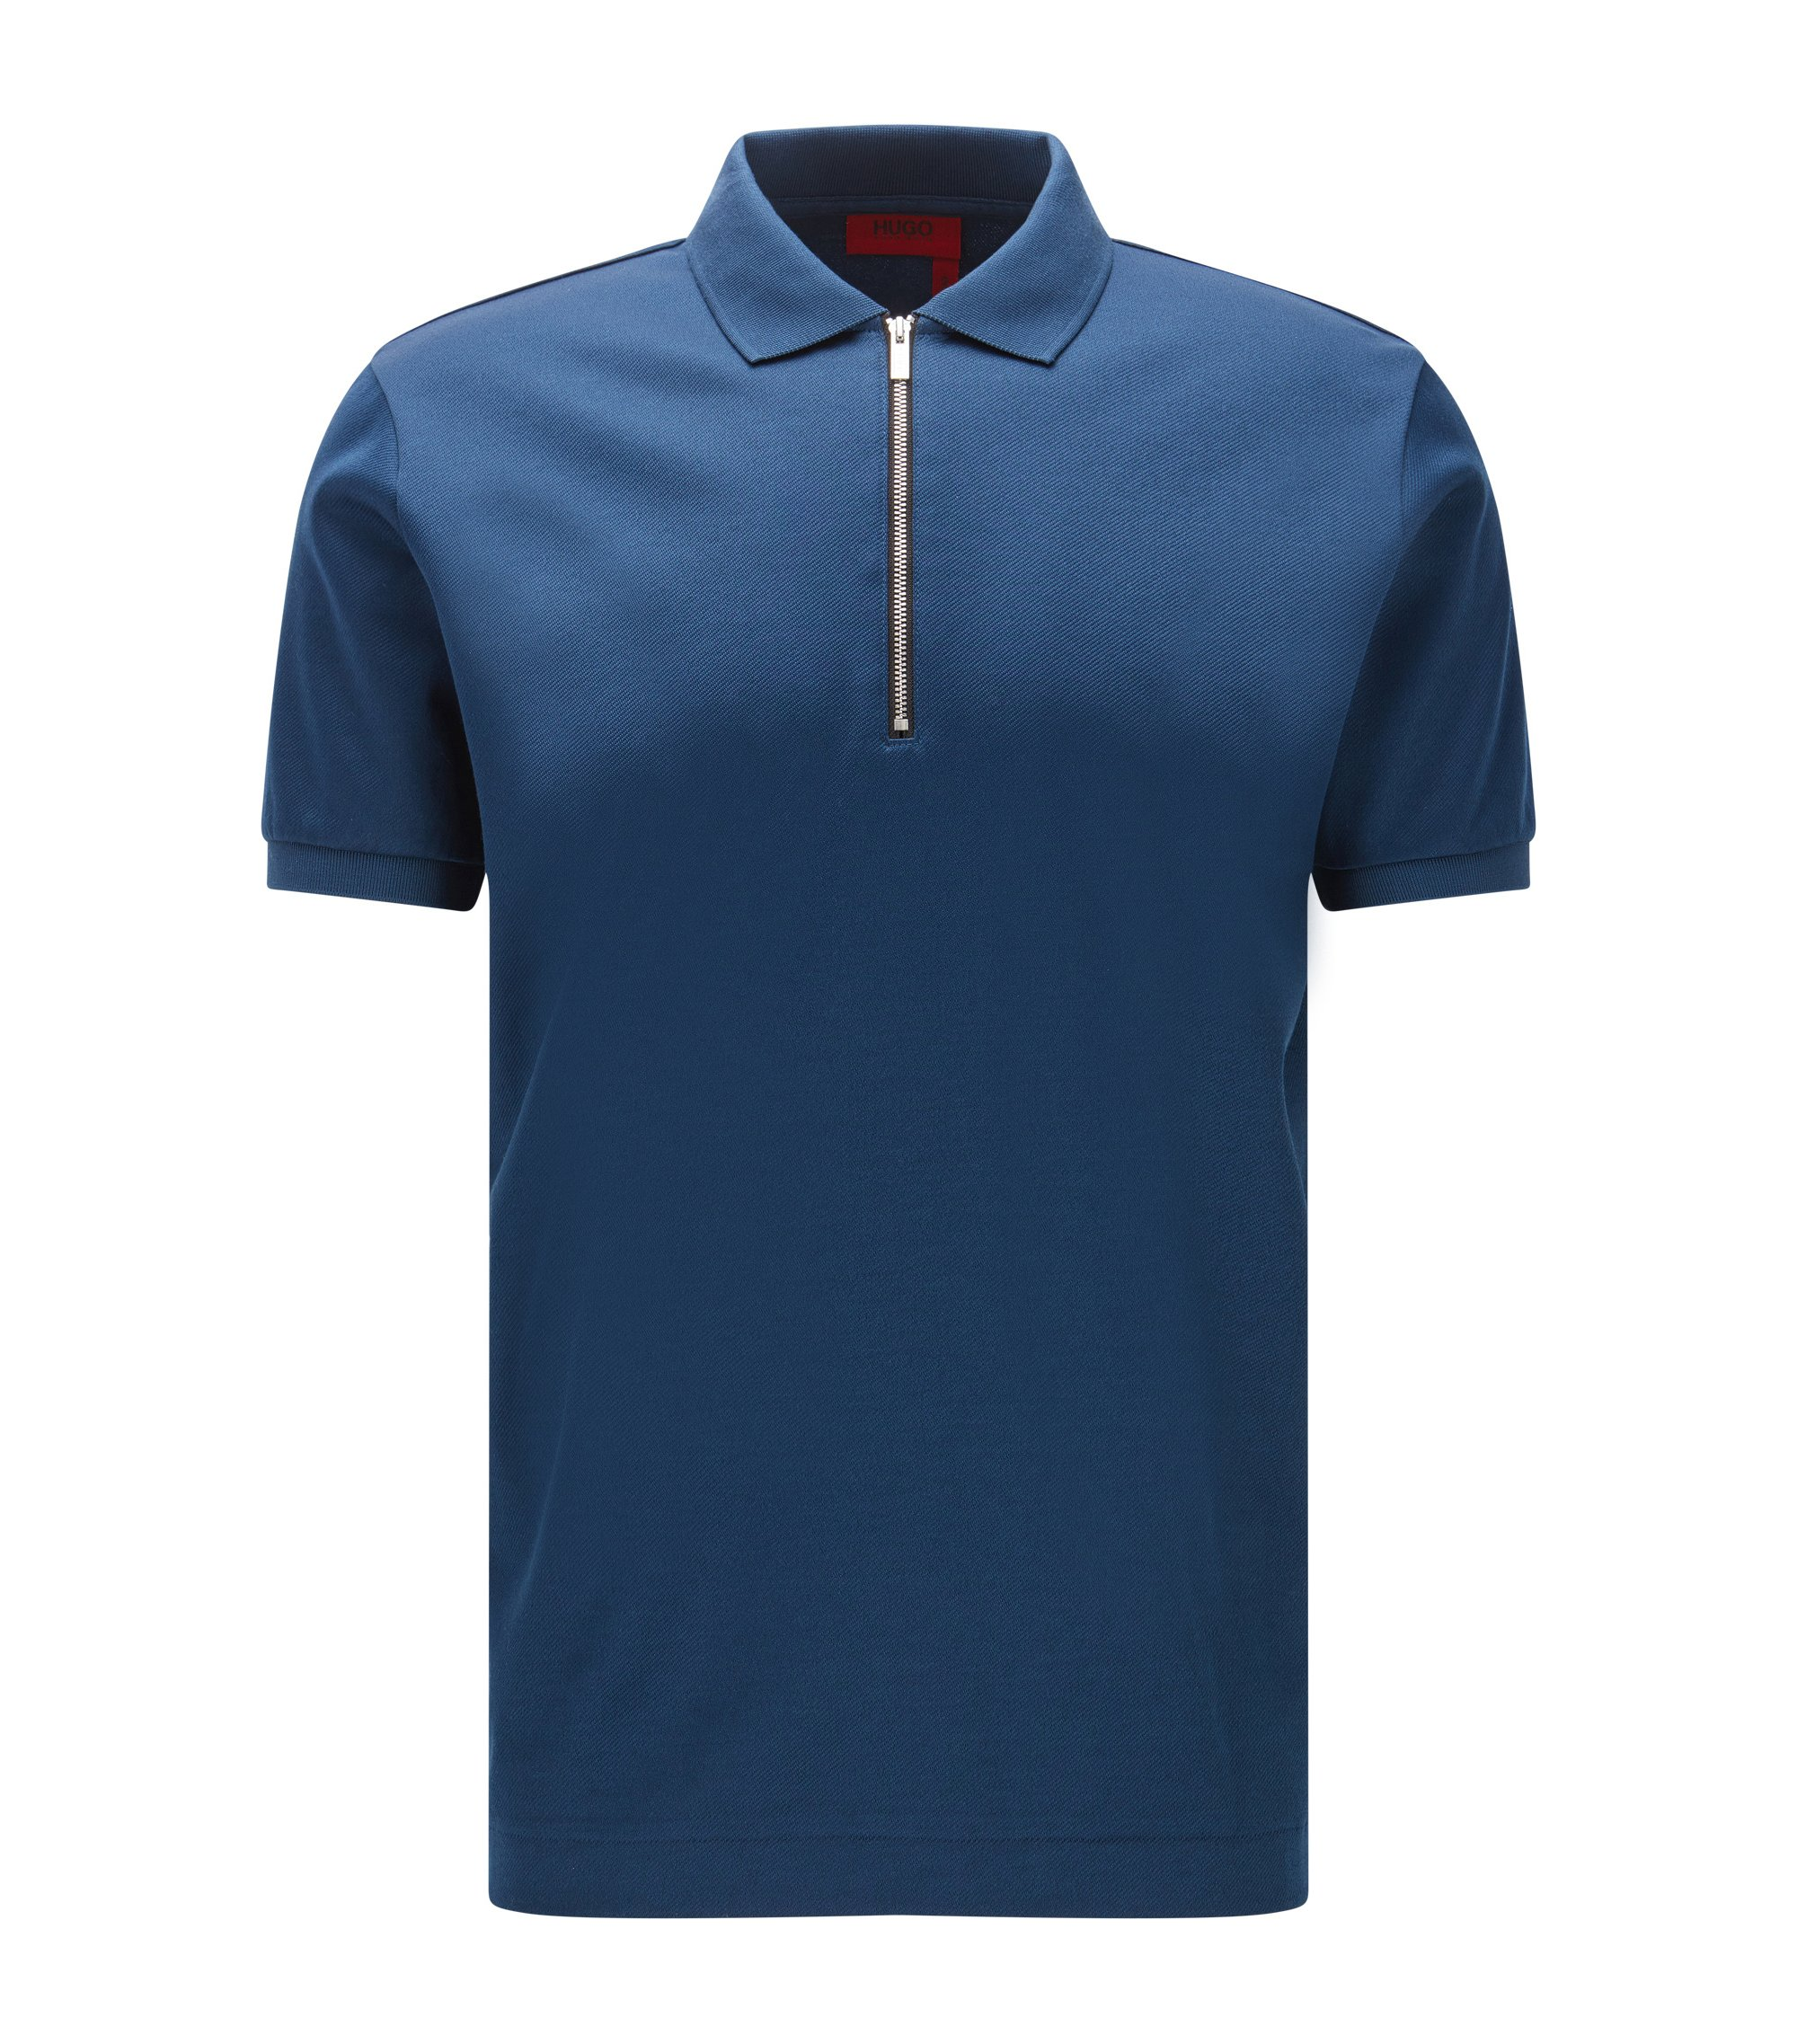 Mercerized Cotton Twill Polo Shirt, Regular Fit | Digato, Dark Blue